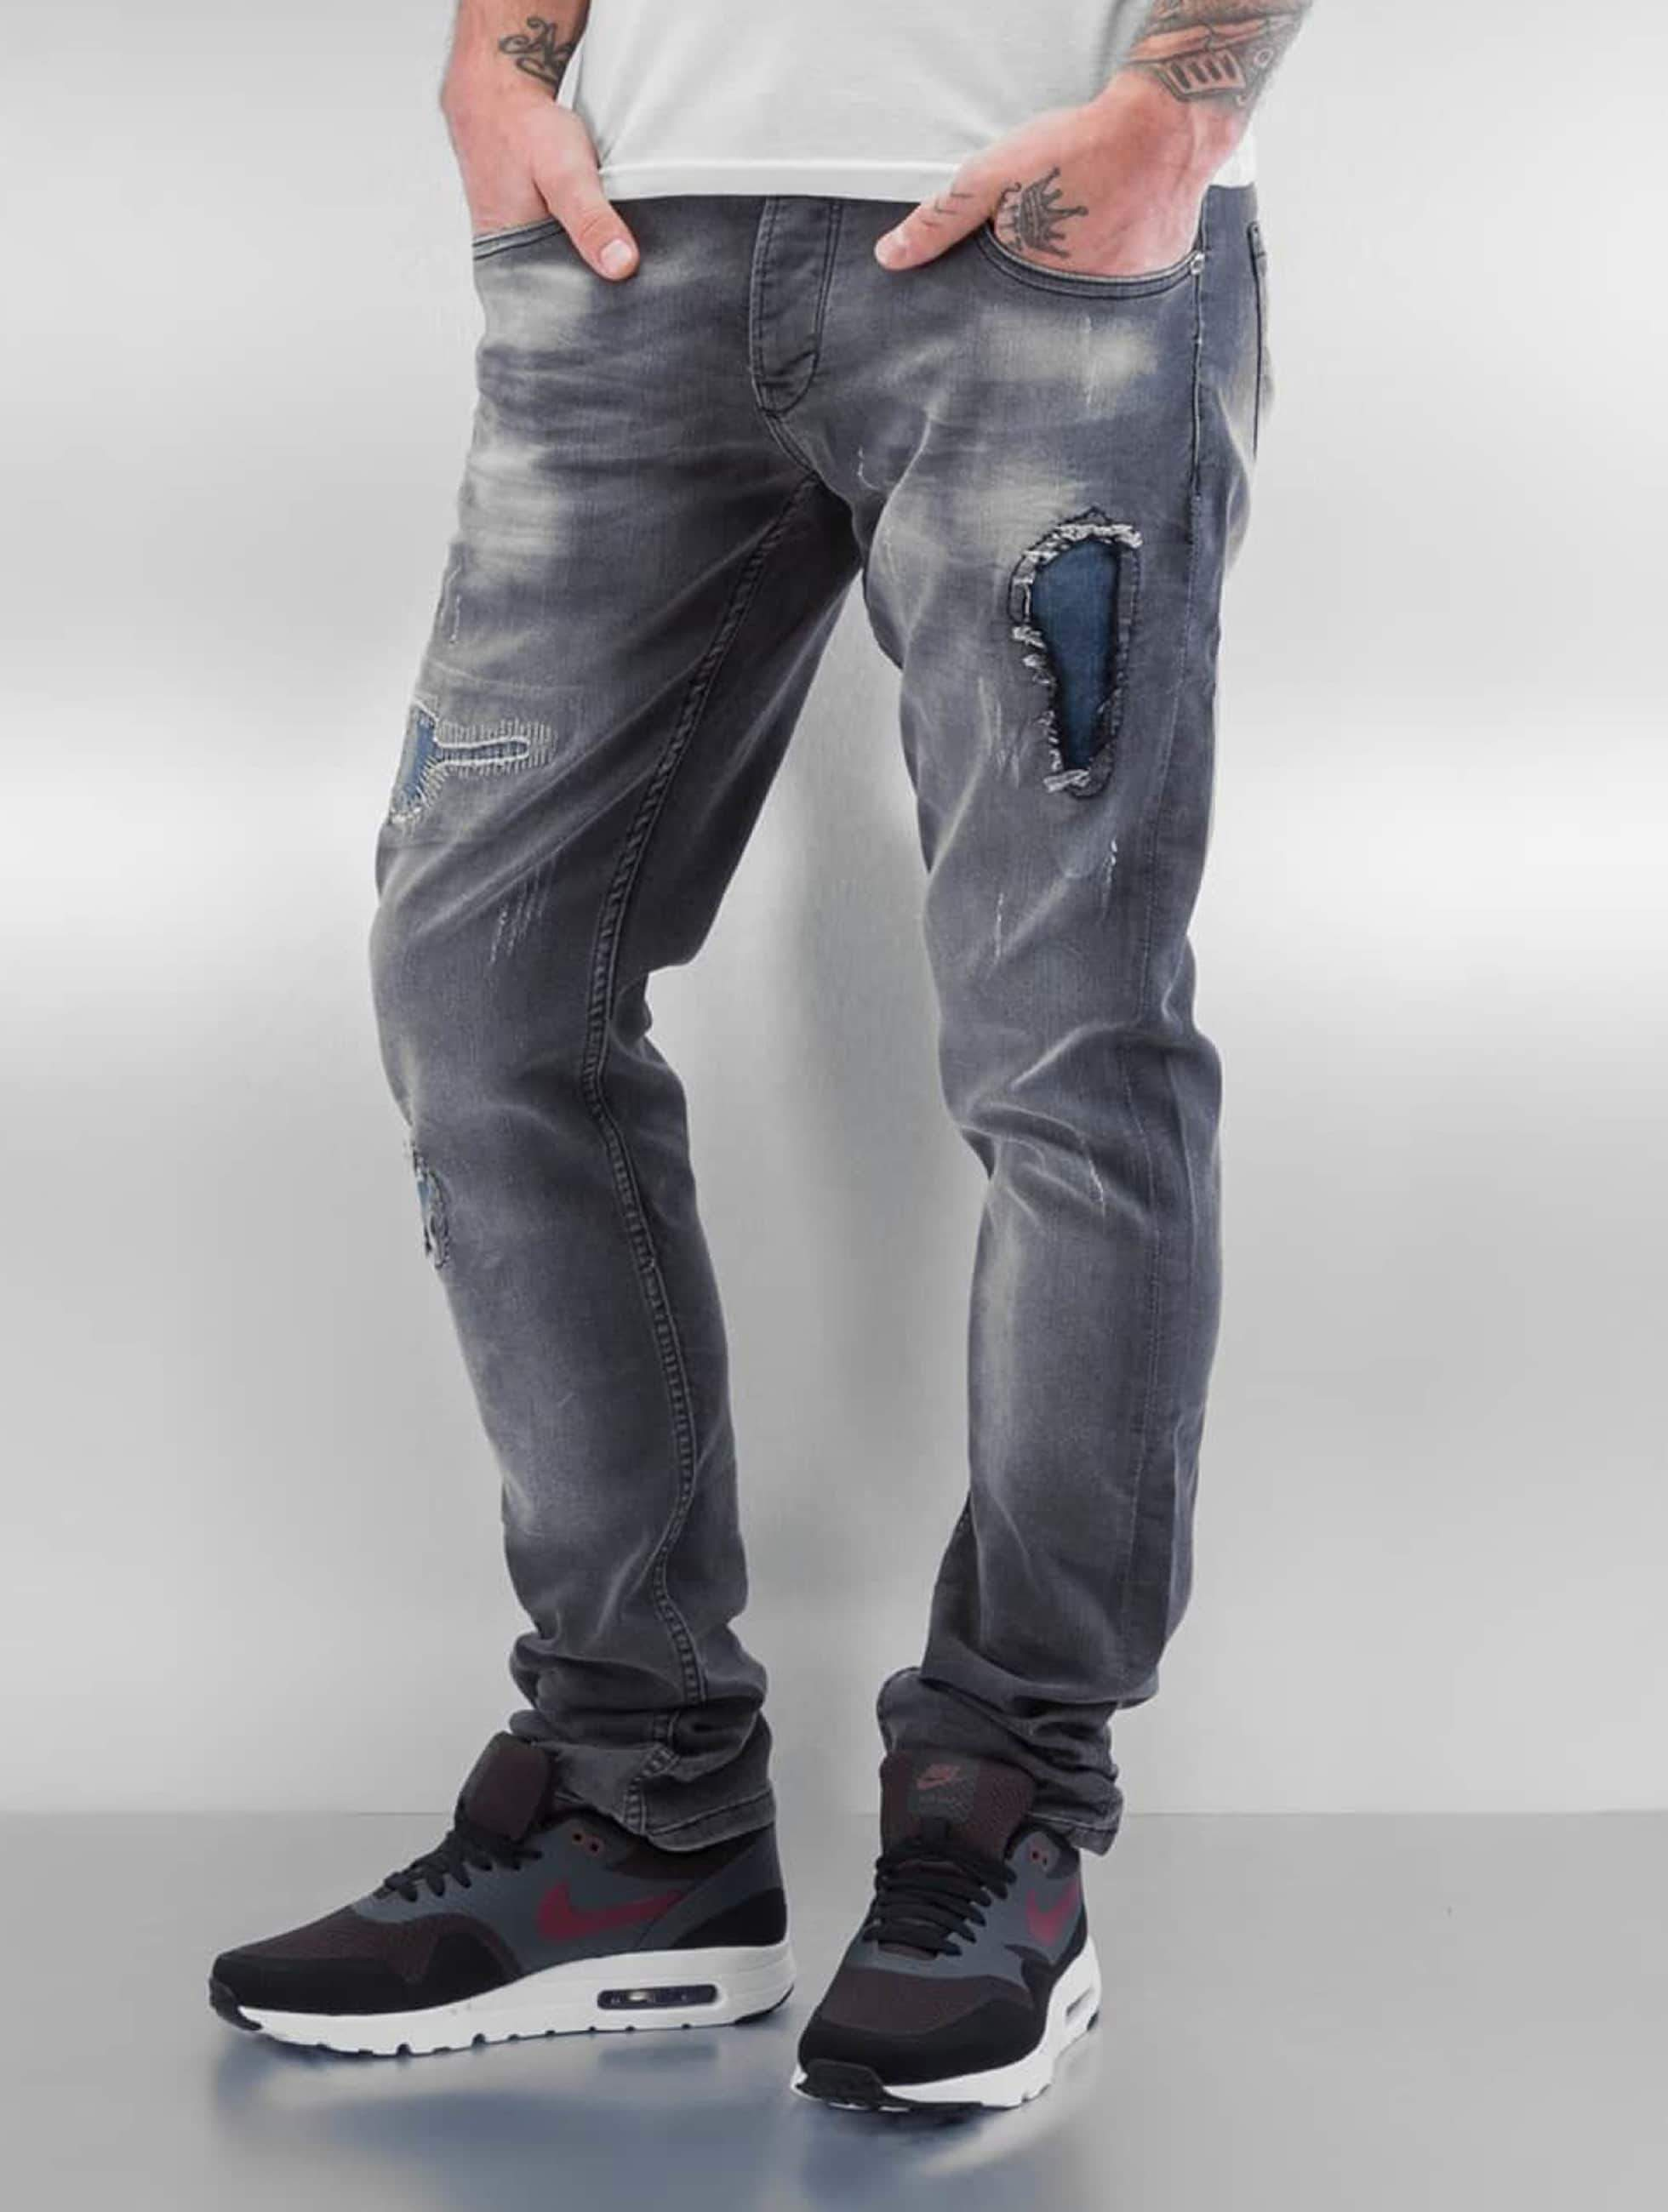 2Y / Slim Fit Jeans Zadar in grey W 32